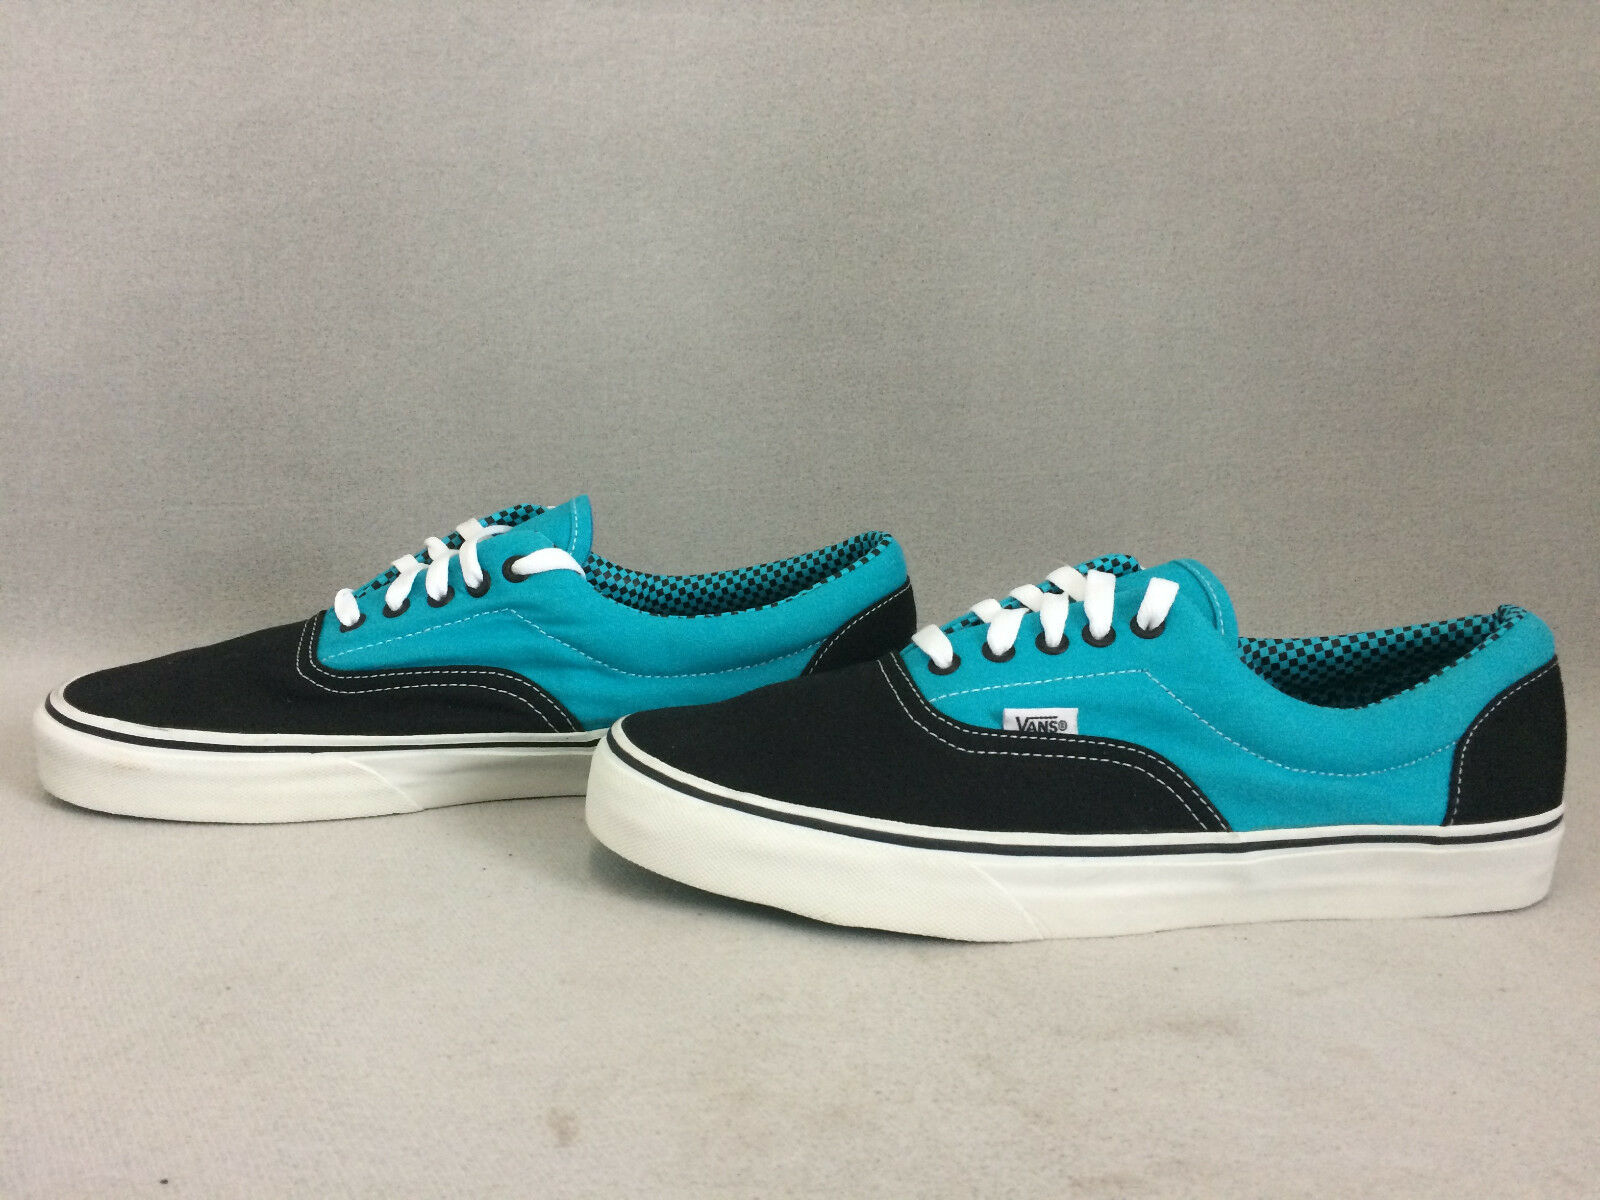 Vans Men's Off The Wall Lace Up Sneakers Black Lightbluee, Size 13 Us